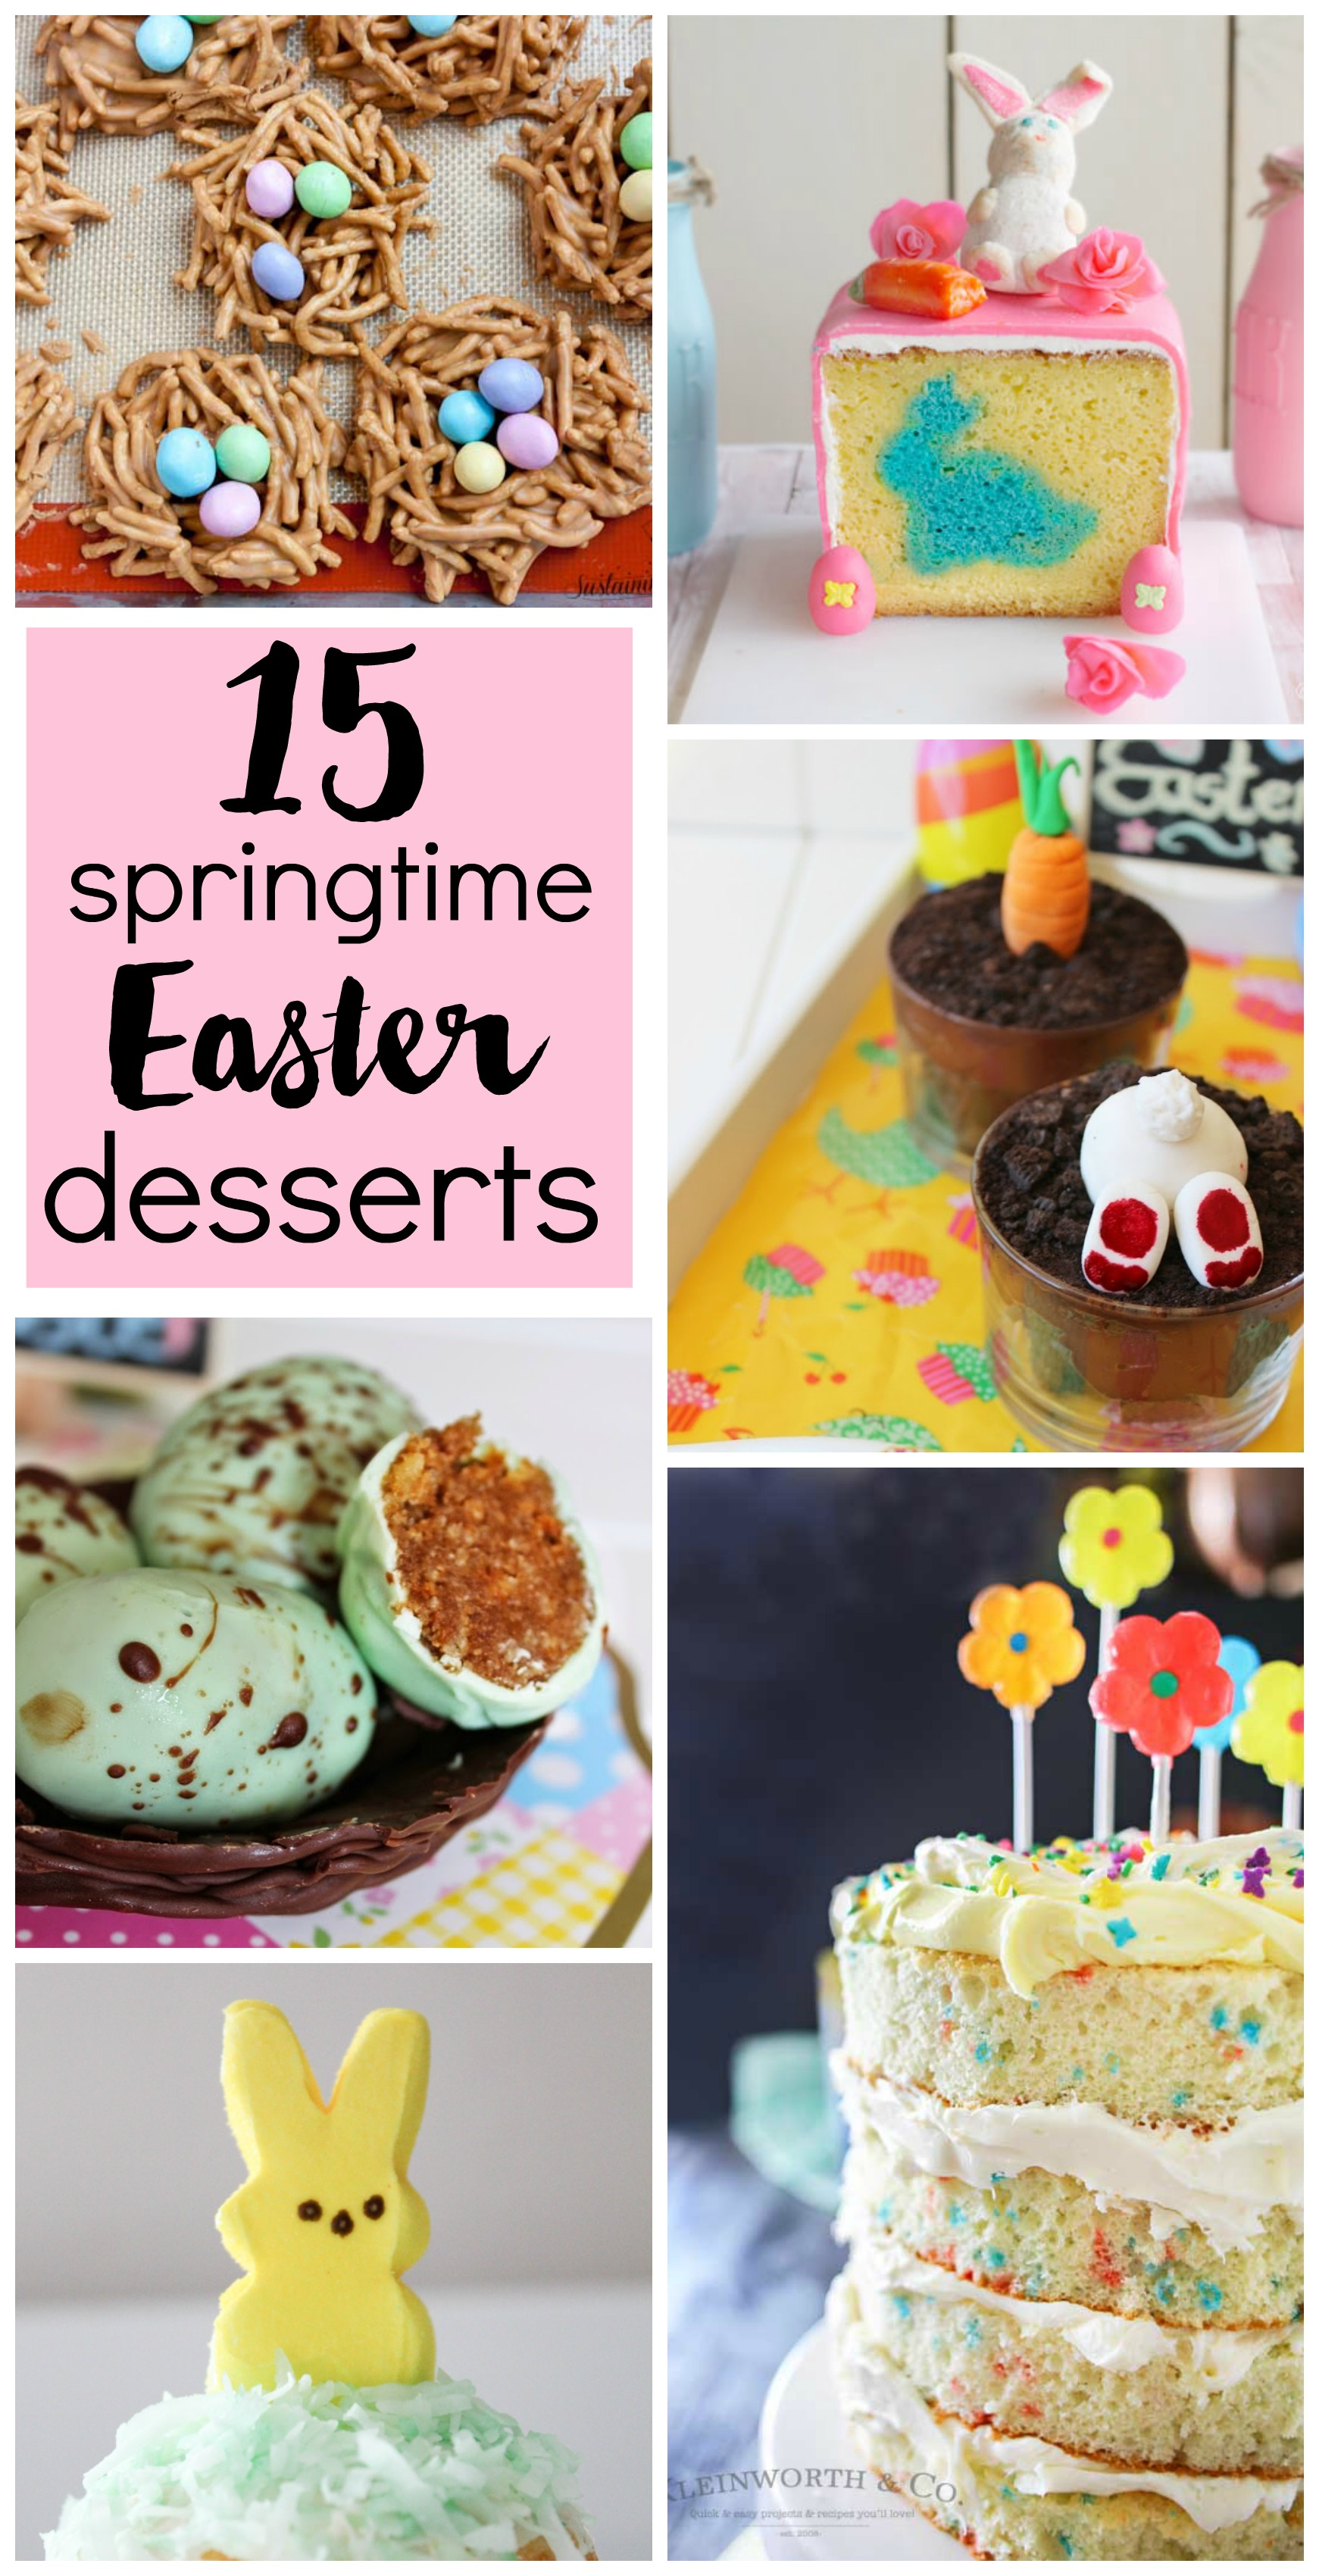 15 Springtime Easter Desserts // Easter is almost here! Get a cute springtime dessert idea for your get together, whether you want an easy cookie recipe or an elaborate cake.